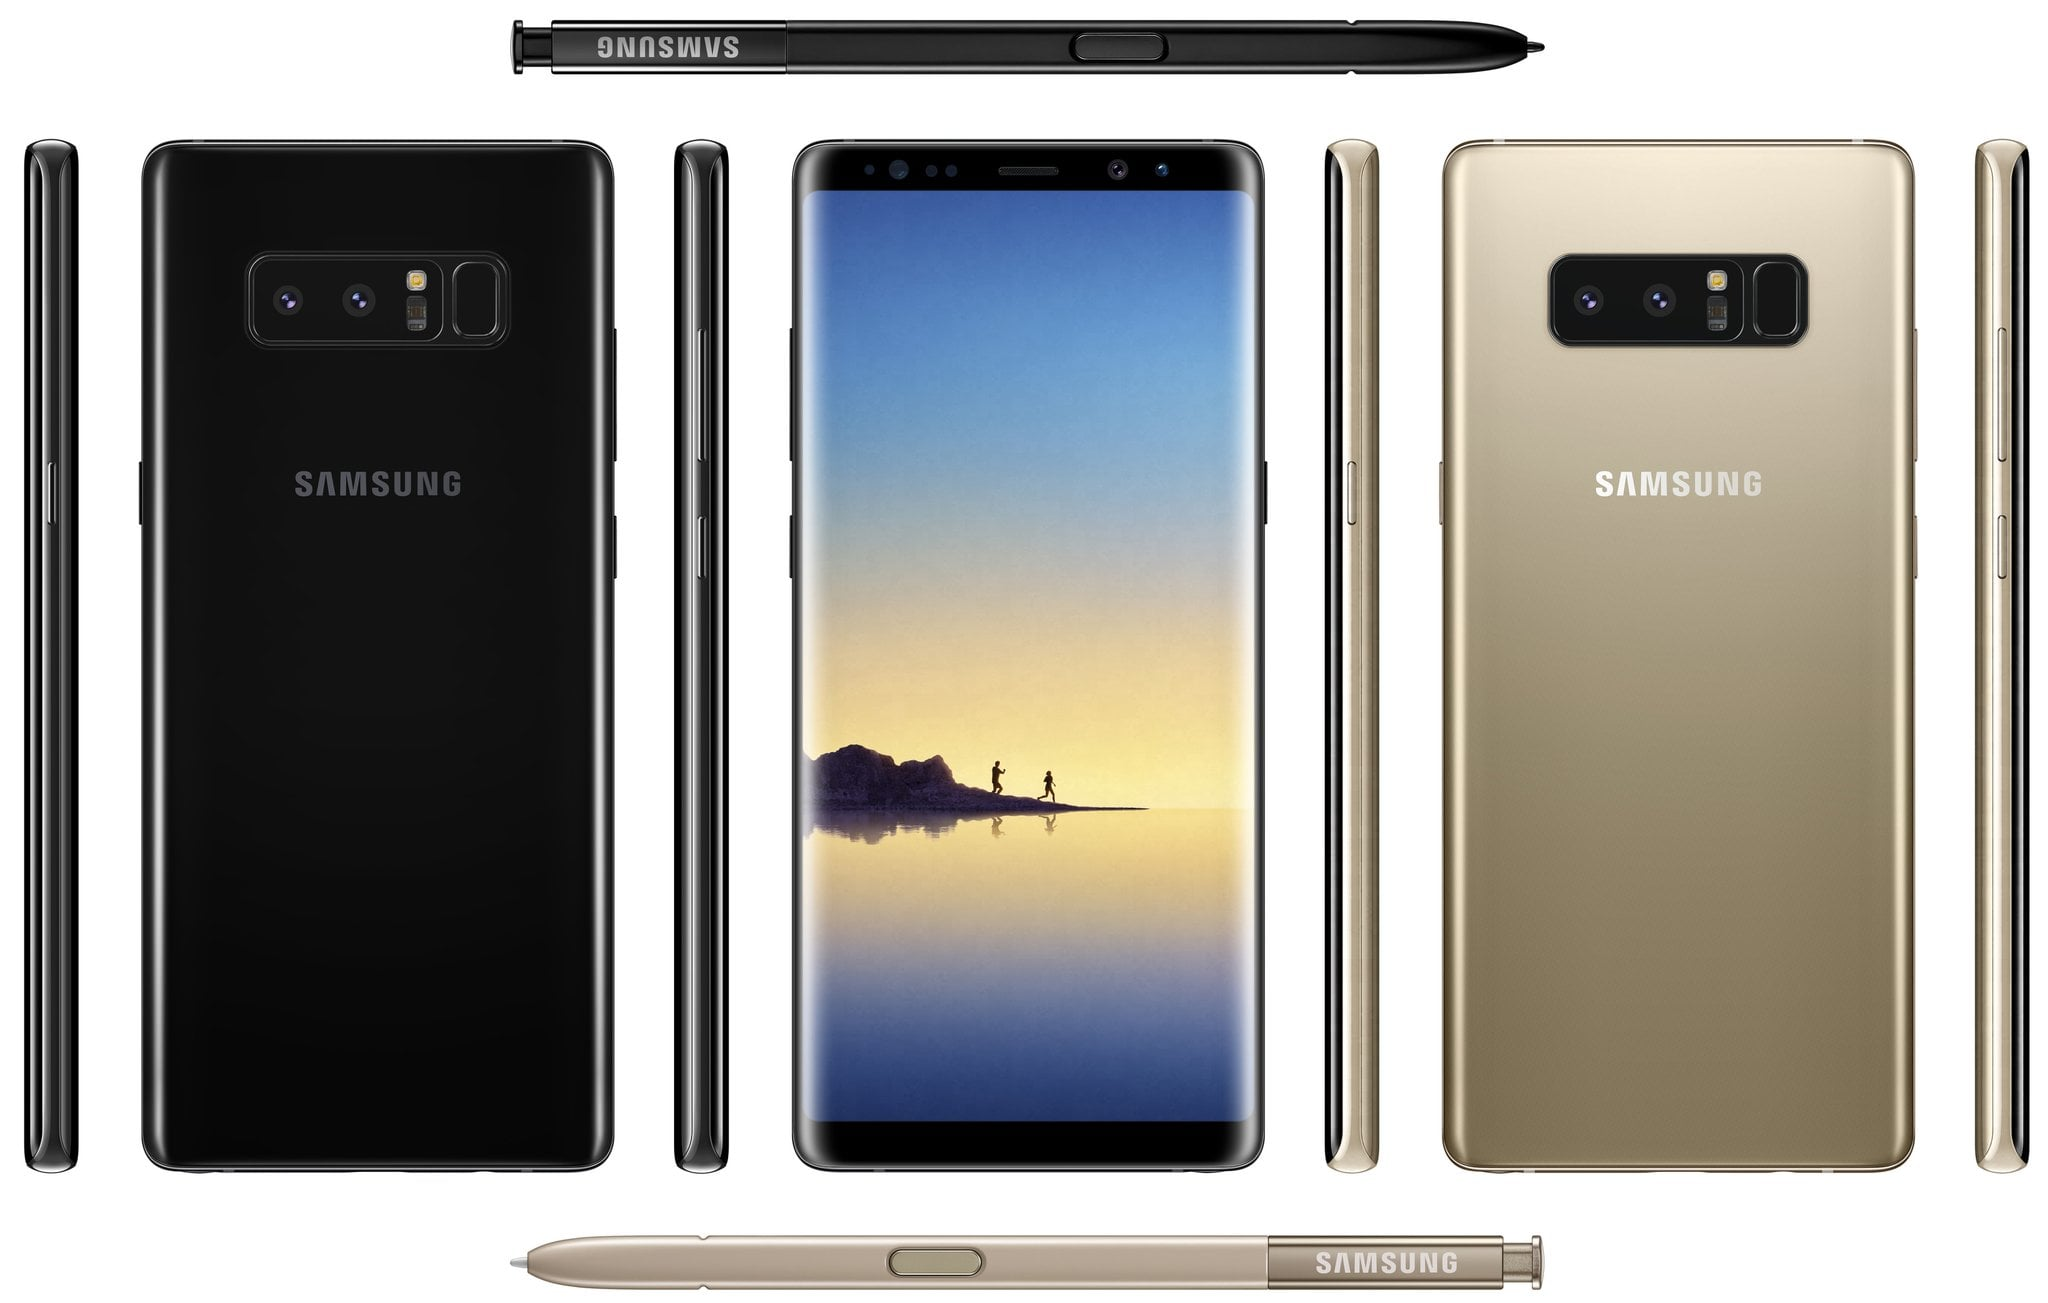 Samsung Galaxy Note 8 Leaked [Images]